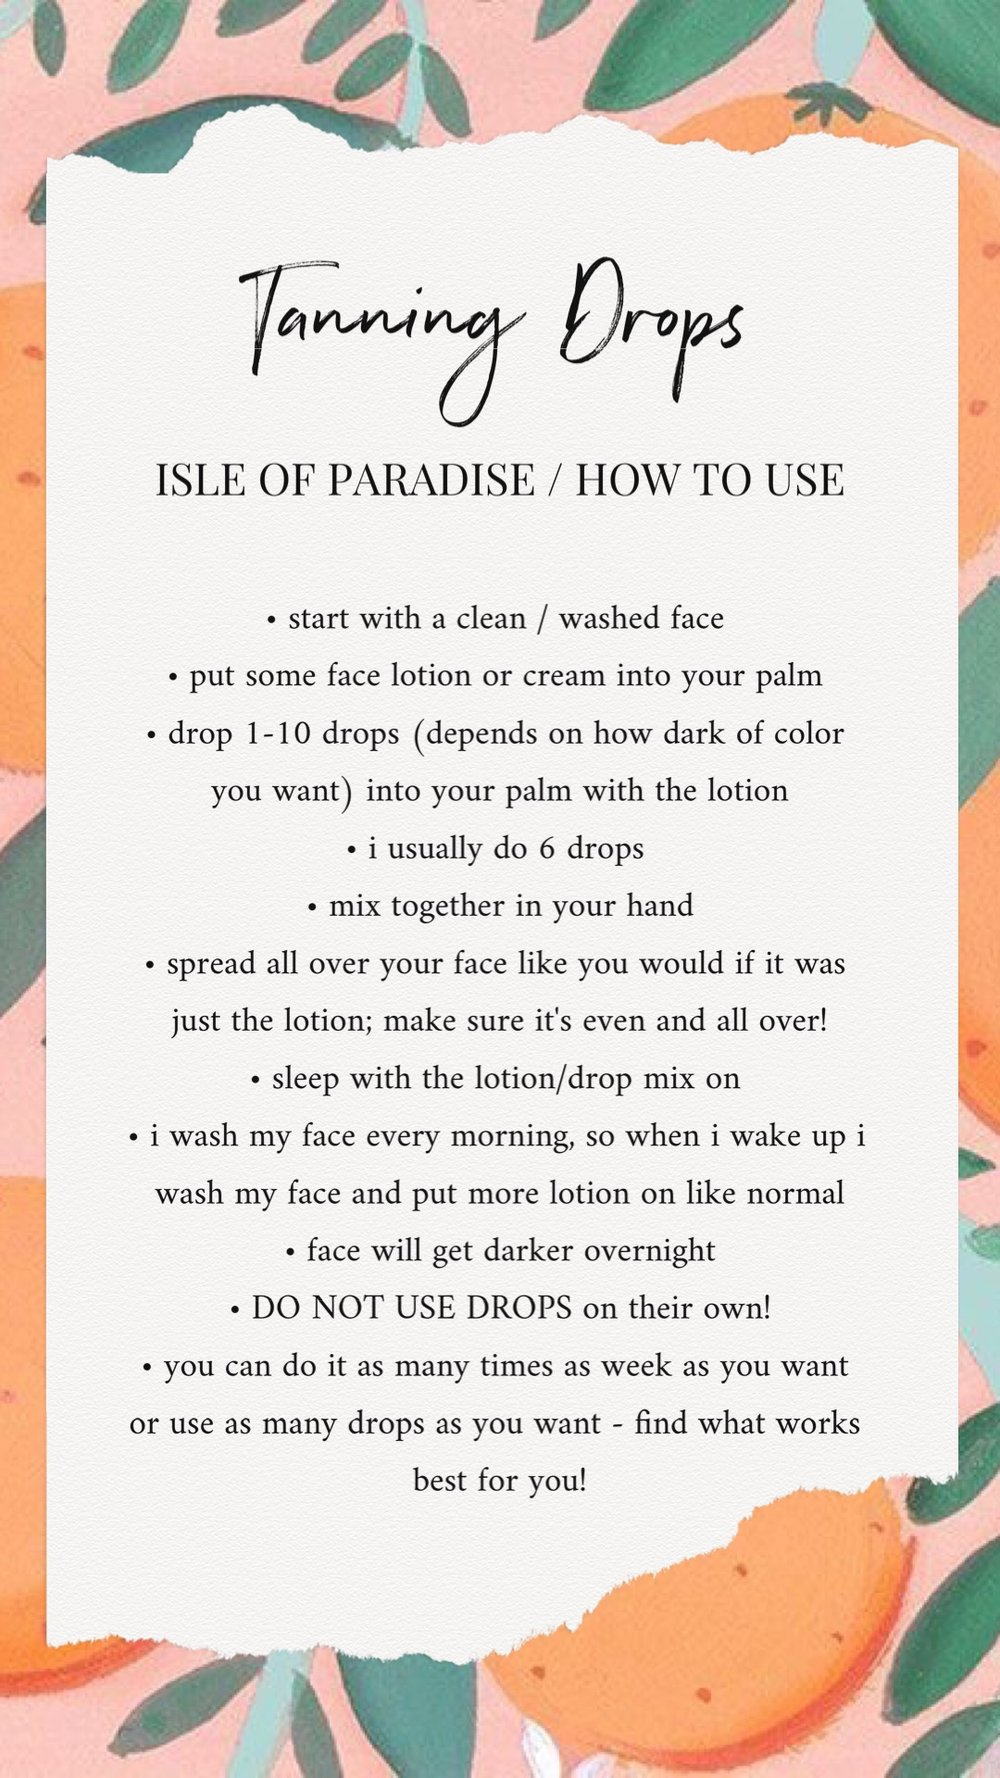 BRE SHEPPARD - Isle Of Paradise Tanning Drops HOW TO.JPG